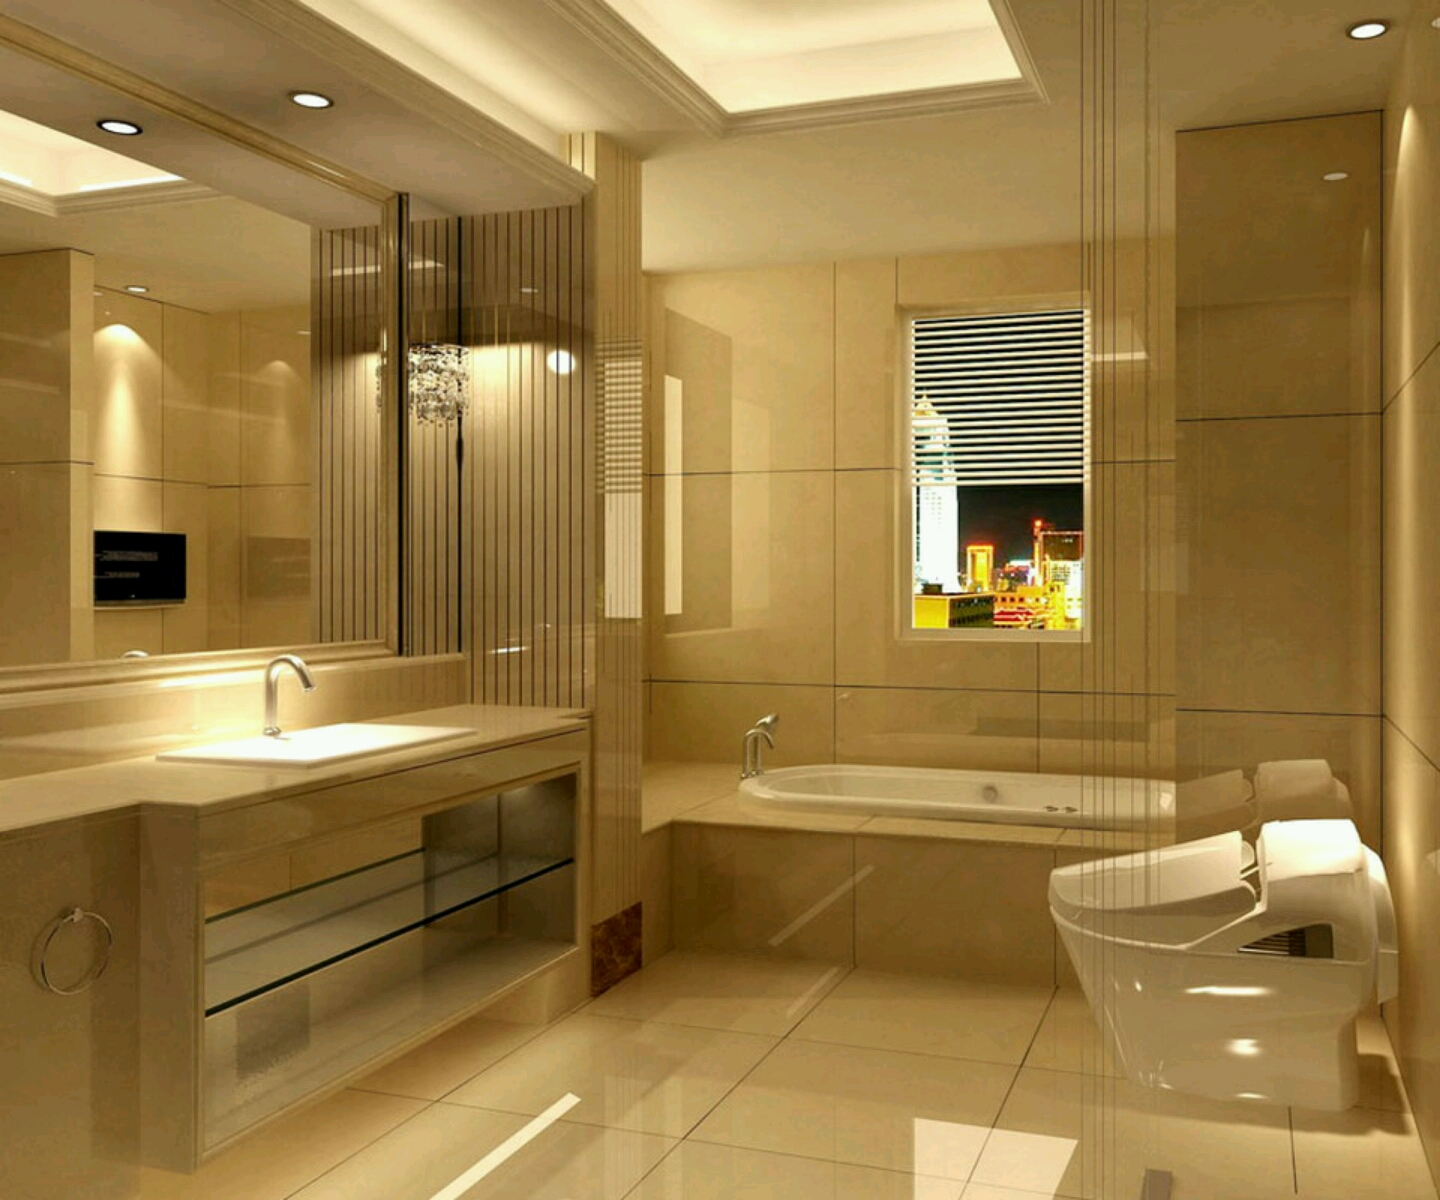 Modern bathrooms setting ideas furniture gallery for Bathrooms designs